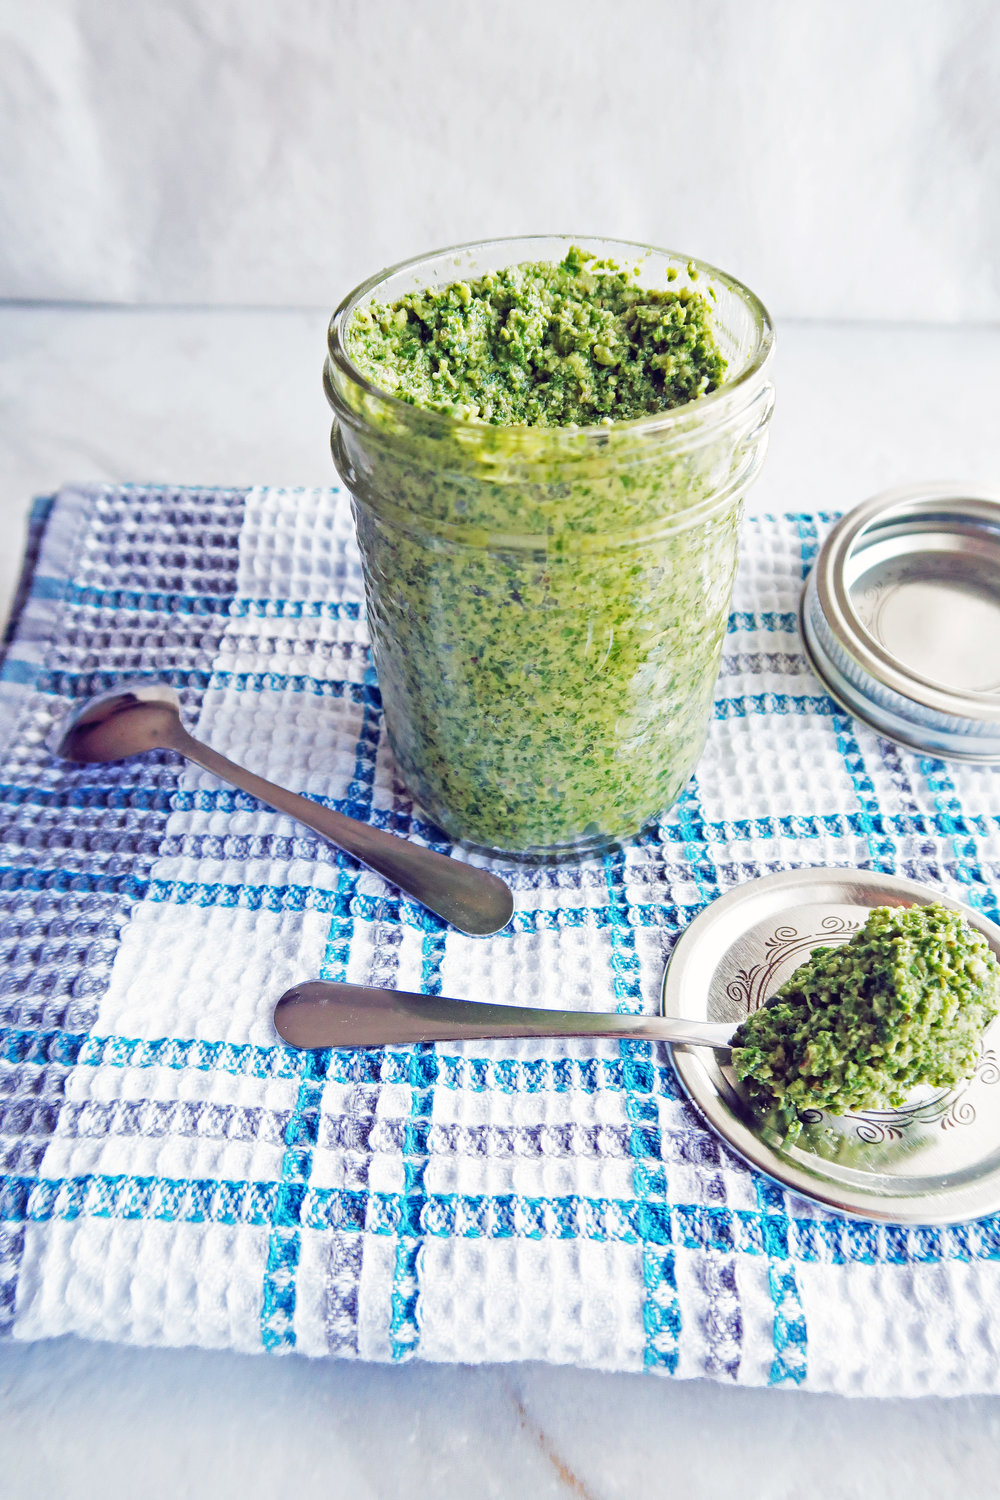 5 Minute Kale Walnut Pesto: An easy, delicious, gluten-free sauce. www.yayforfood.com